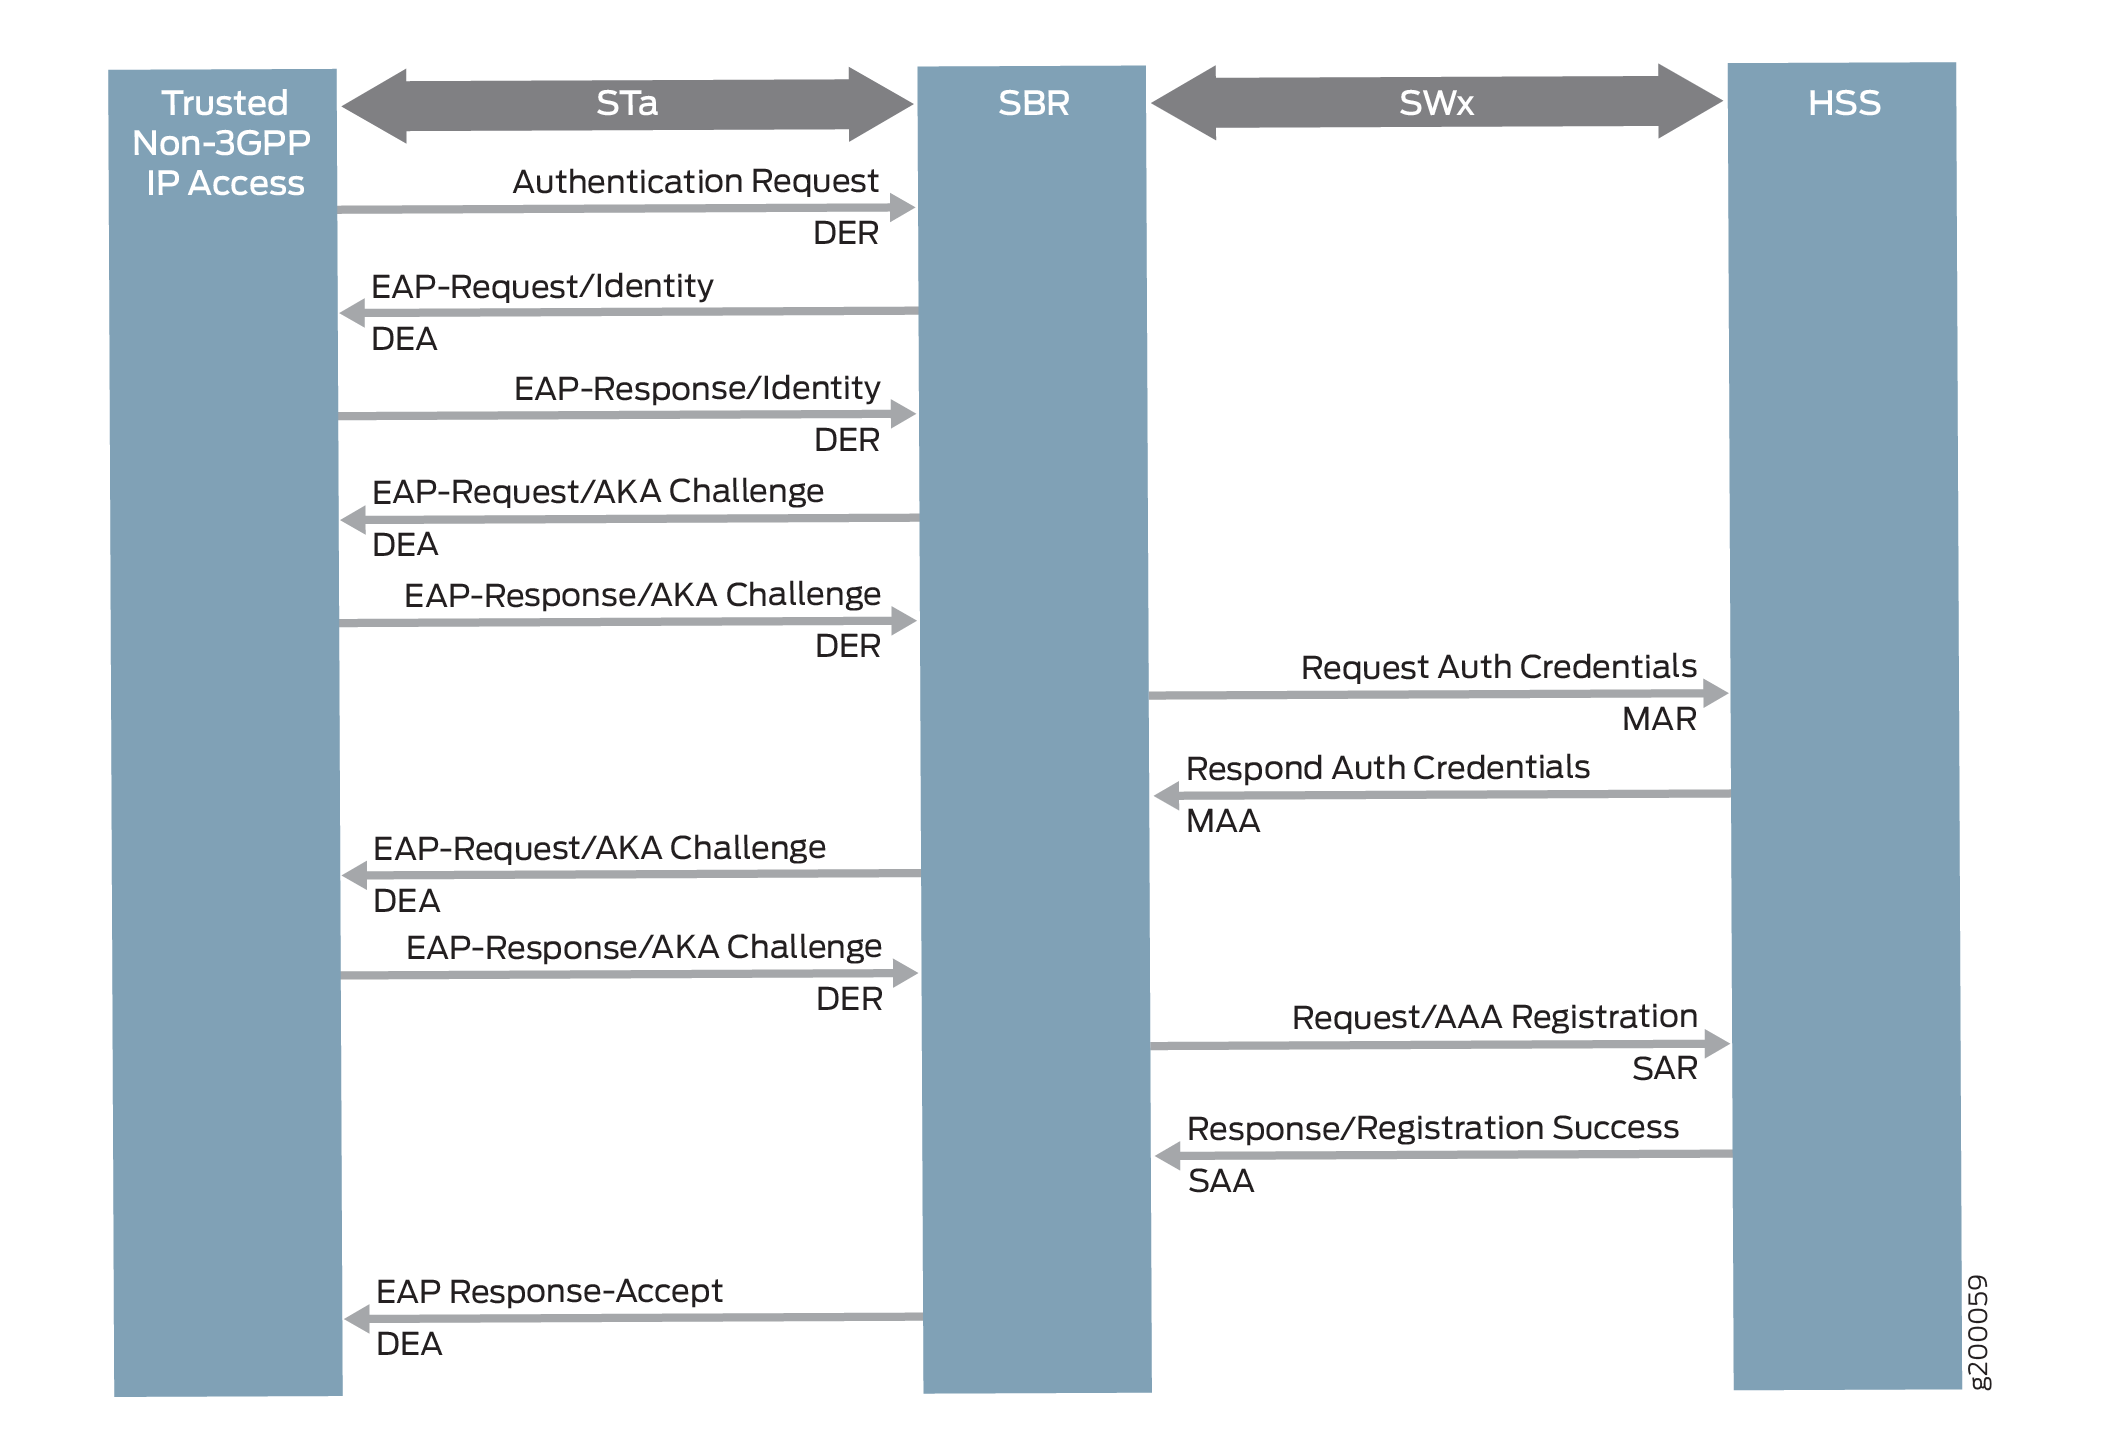 EAP Authentication Message Flow Between Trusted Non-3GPP Network and HSS